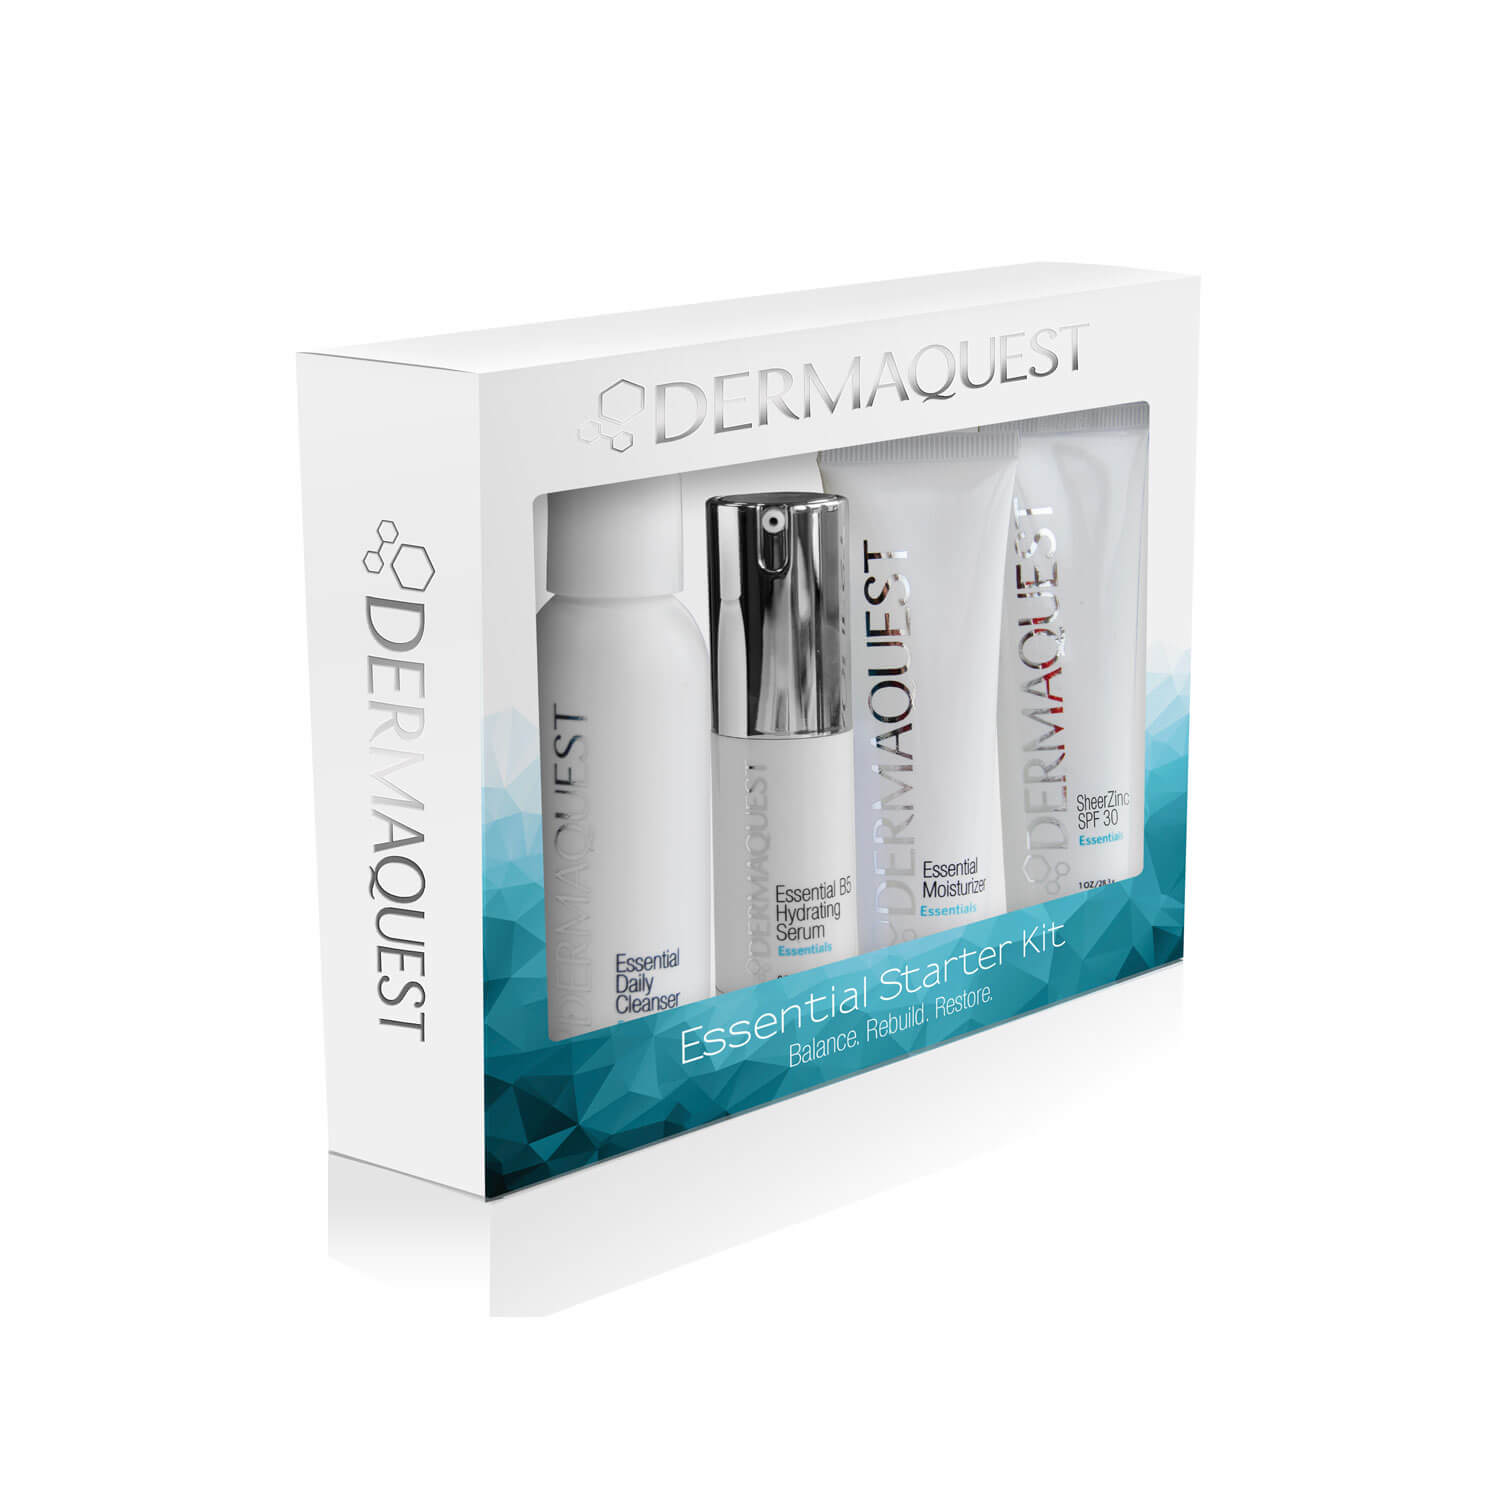 ESSENTIAL STARTER KIT - This kit contains comprehensive blends of high performance ingredients such as powerful antioxidants and botanical plant stem cells designed to balance, hydrate, strengthen and protect the skin. This regimen helps your skin reach its fullest potential by improving your skins' natural balance and establishing a vibrant healthy glow.Essential Daily Cleanser (2 fl oz / 59.1 ml)Essential B5 Hydrating Serum (0.5 fl oz / 14.8 ml)Essential Moisturizer (1 fl oz / 29.6 ml)SheerZinc SPF30(1 oz / 28.3 g)$75.00